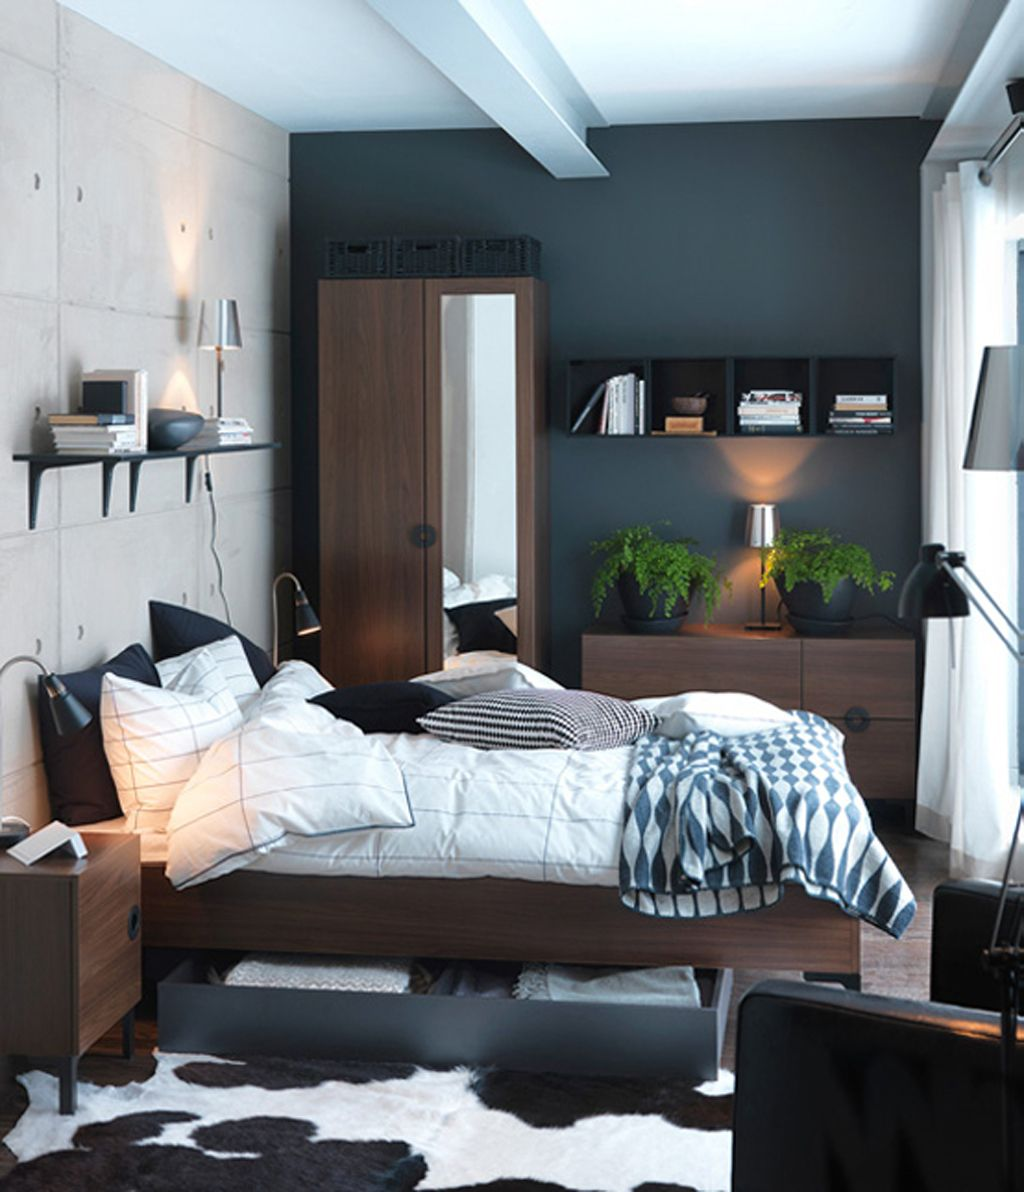 Exceptionnel Bedroom Theme Brown, Blue, White, Grey, Hints Of Green And Gold Too